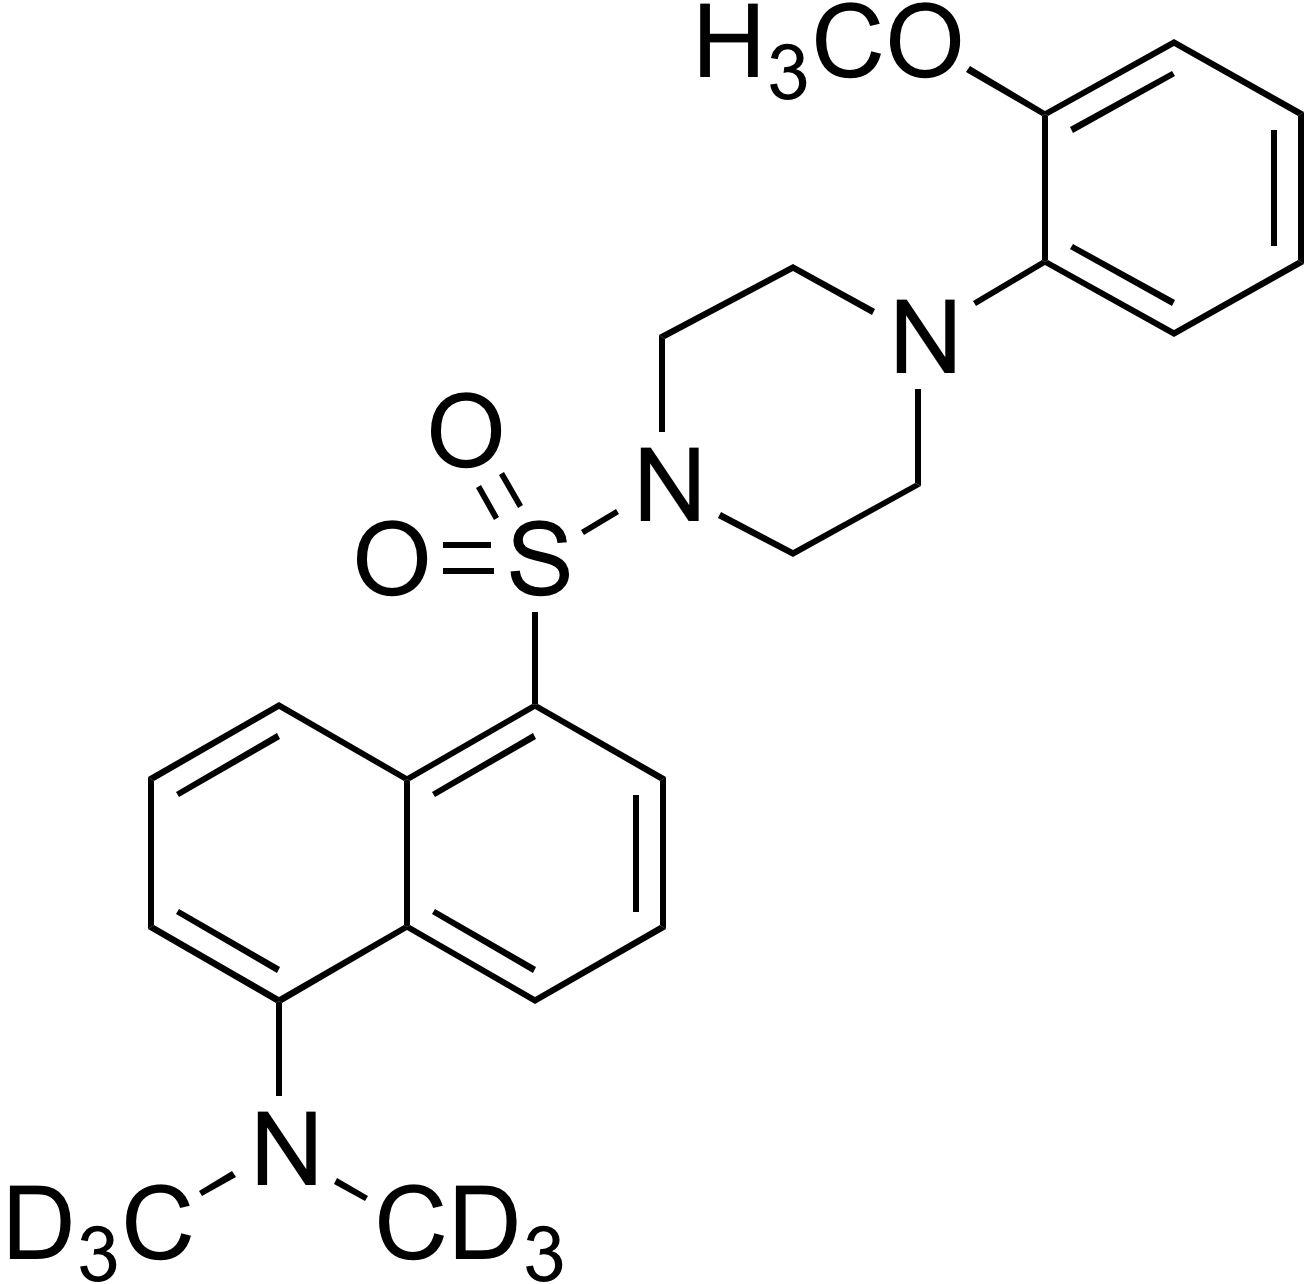 N-Dansyl-d<sub>6</sub>-1-(2-methoxyphenyl)piperazine